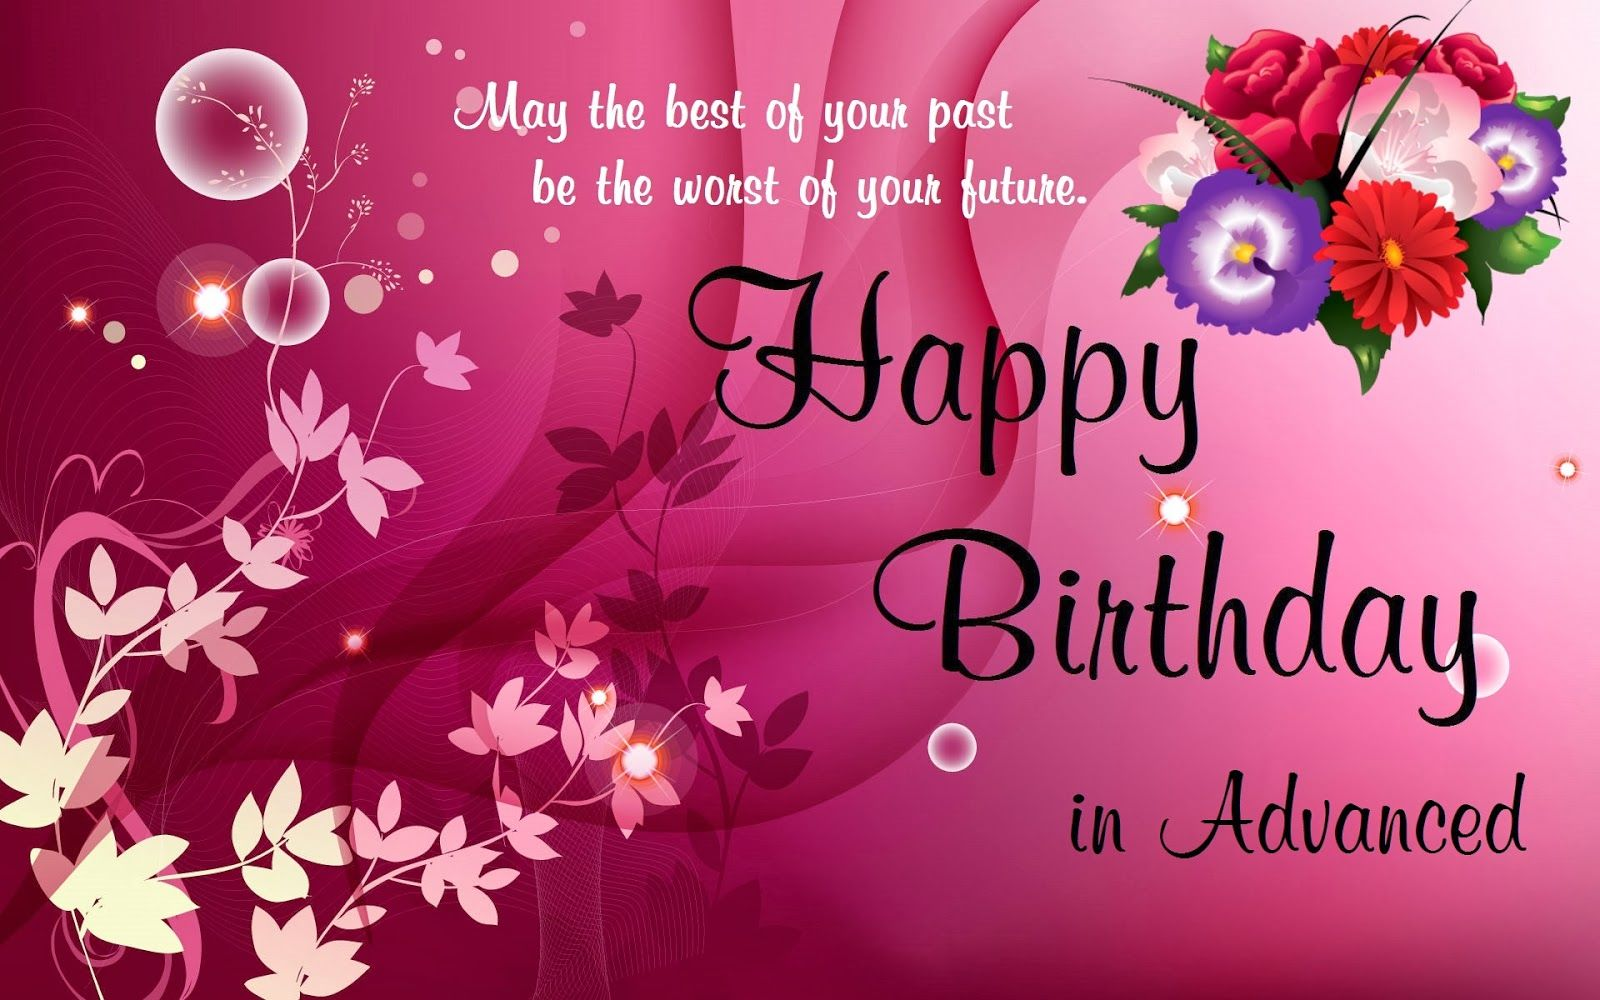 happy birthday in advance greeting cards ; 262849-Happy-Birthday-In-Advanced